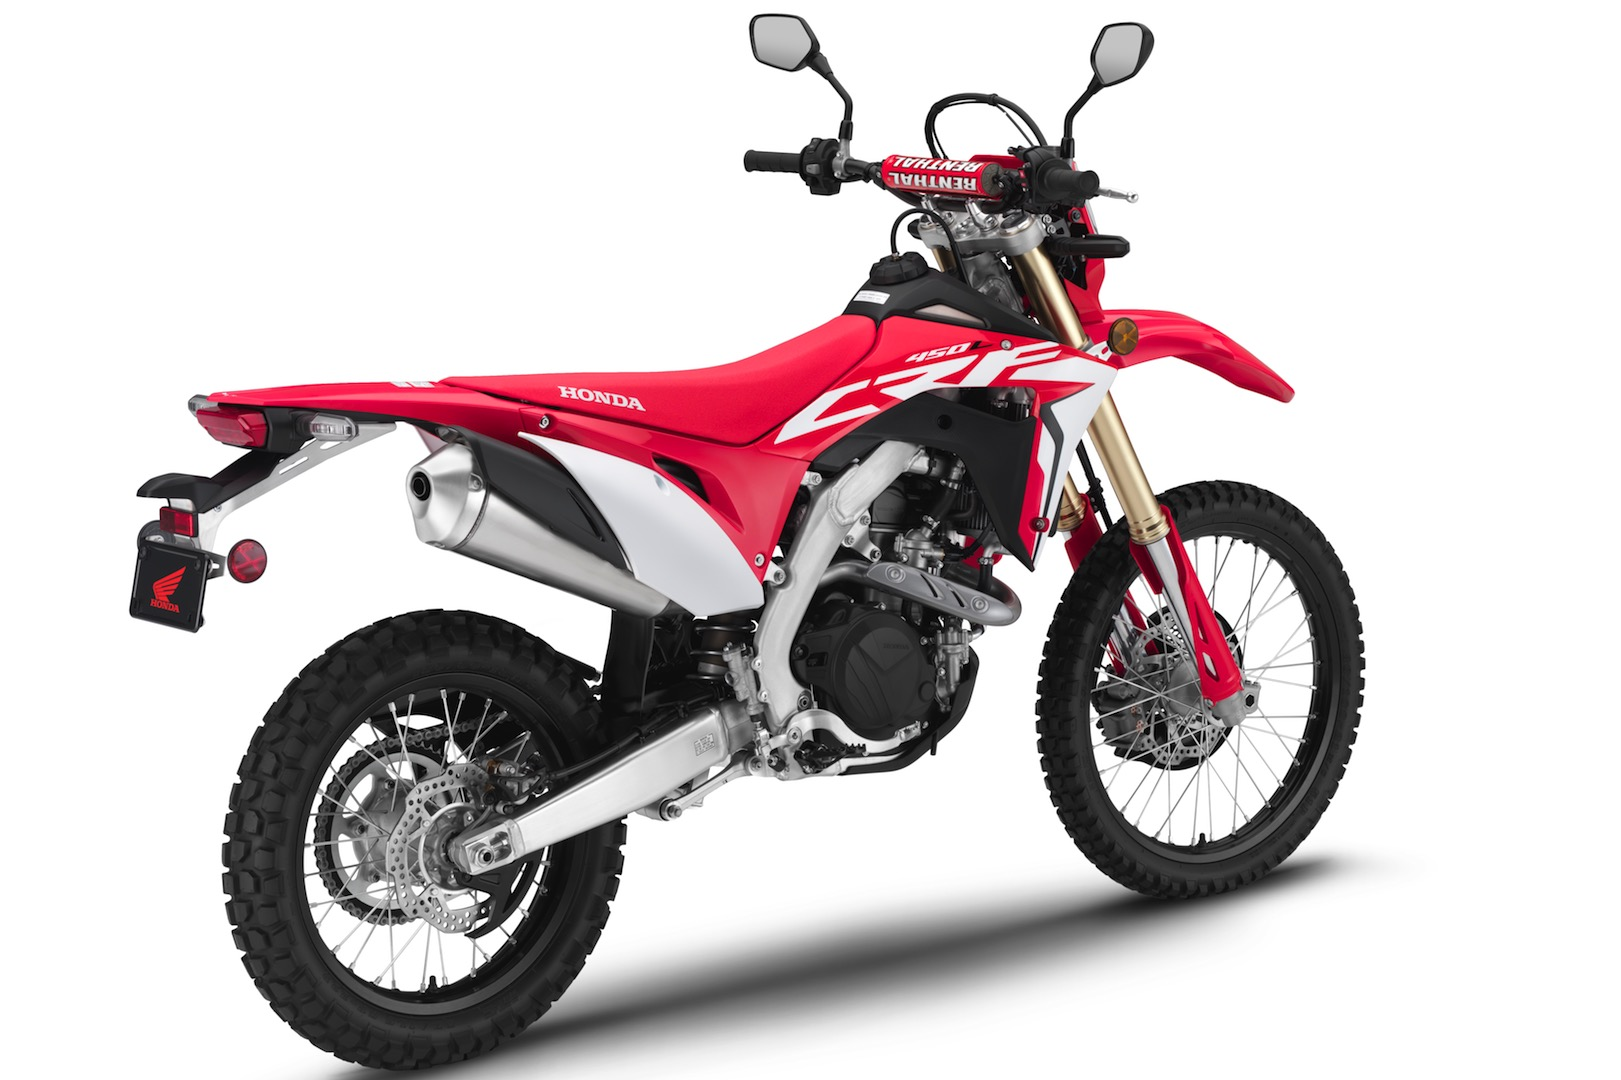 2019 Honda Crf450l First Look 7 Fast Facts And Photos